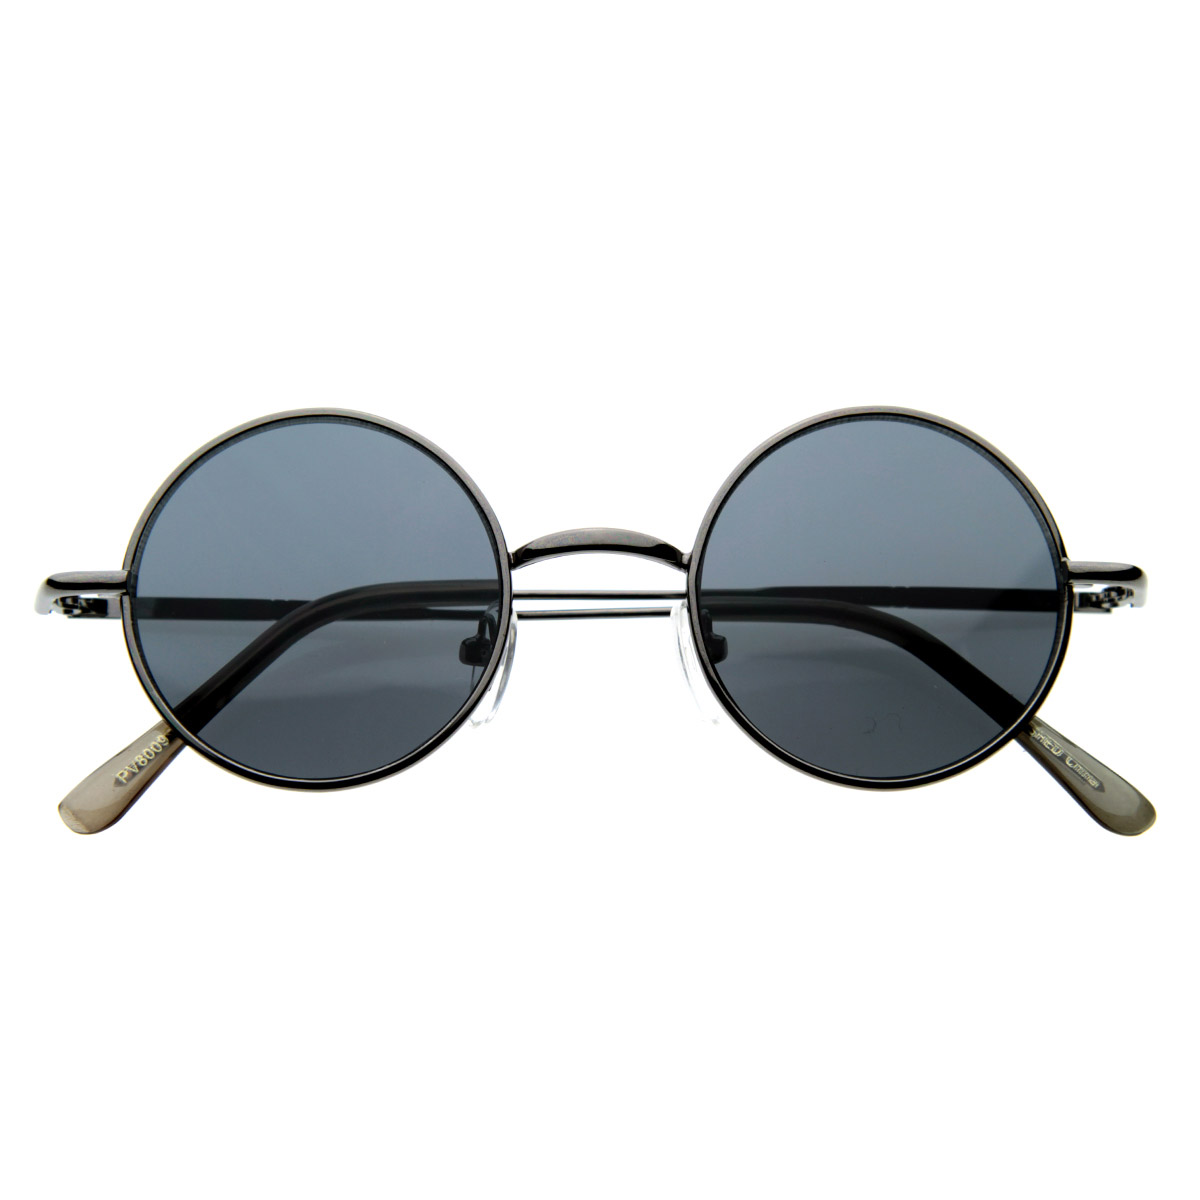 Small-Retro-Vintage-Style-Lennon-Inspired-Round-Metal-Circle-Sunglasses